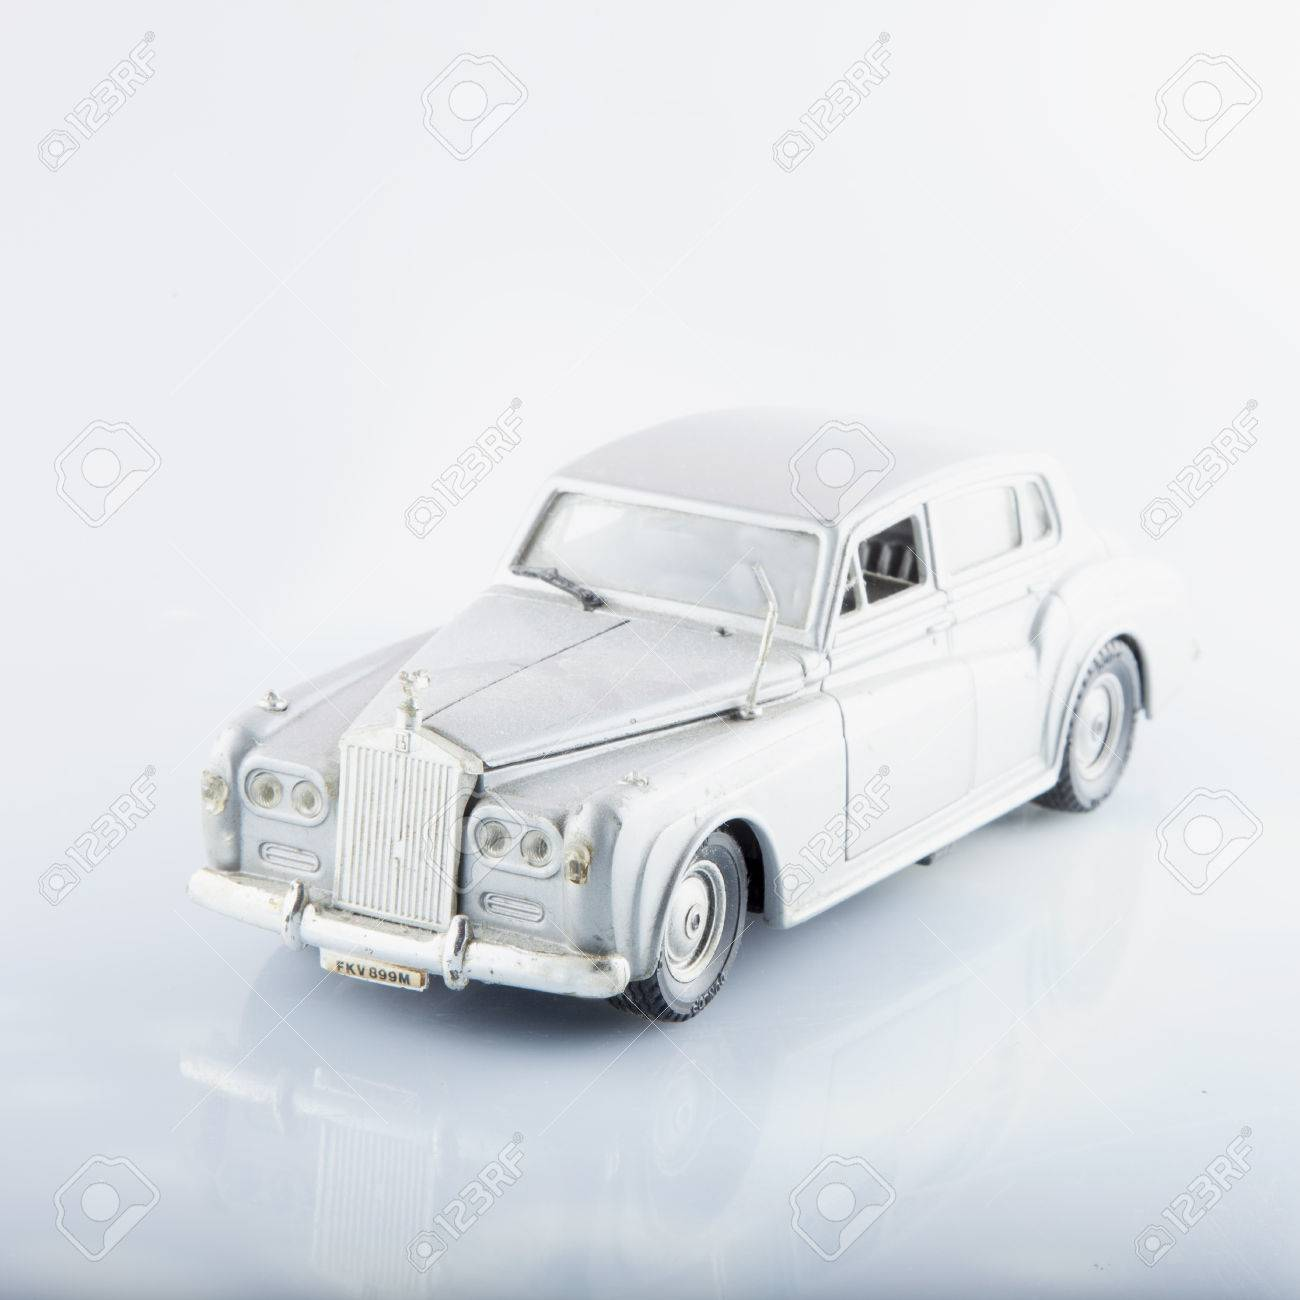 Casale Monferrato August 11 2015 Rolls Royce Silver Cloud Stock Photo Picture And Royalty Free Image Image 43801622